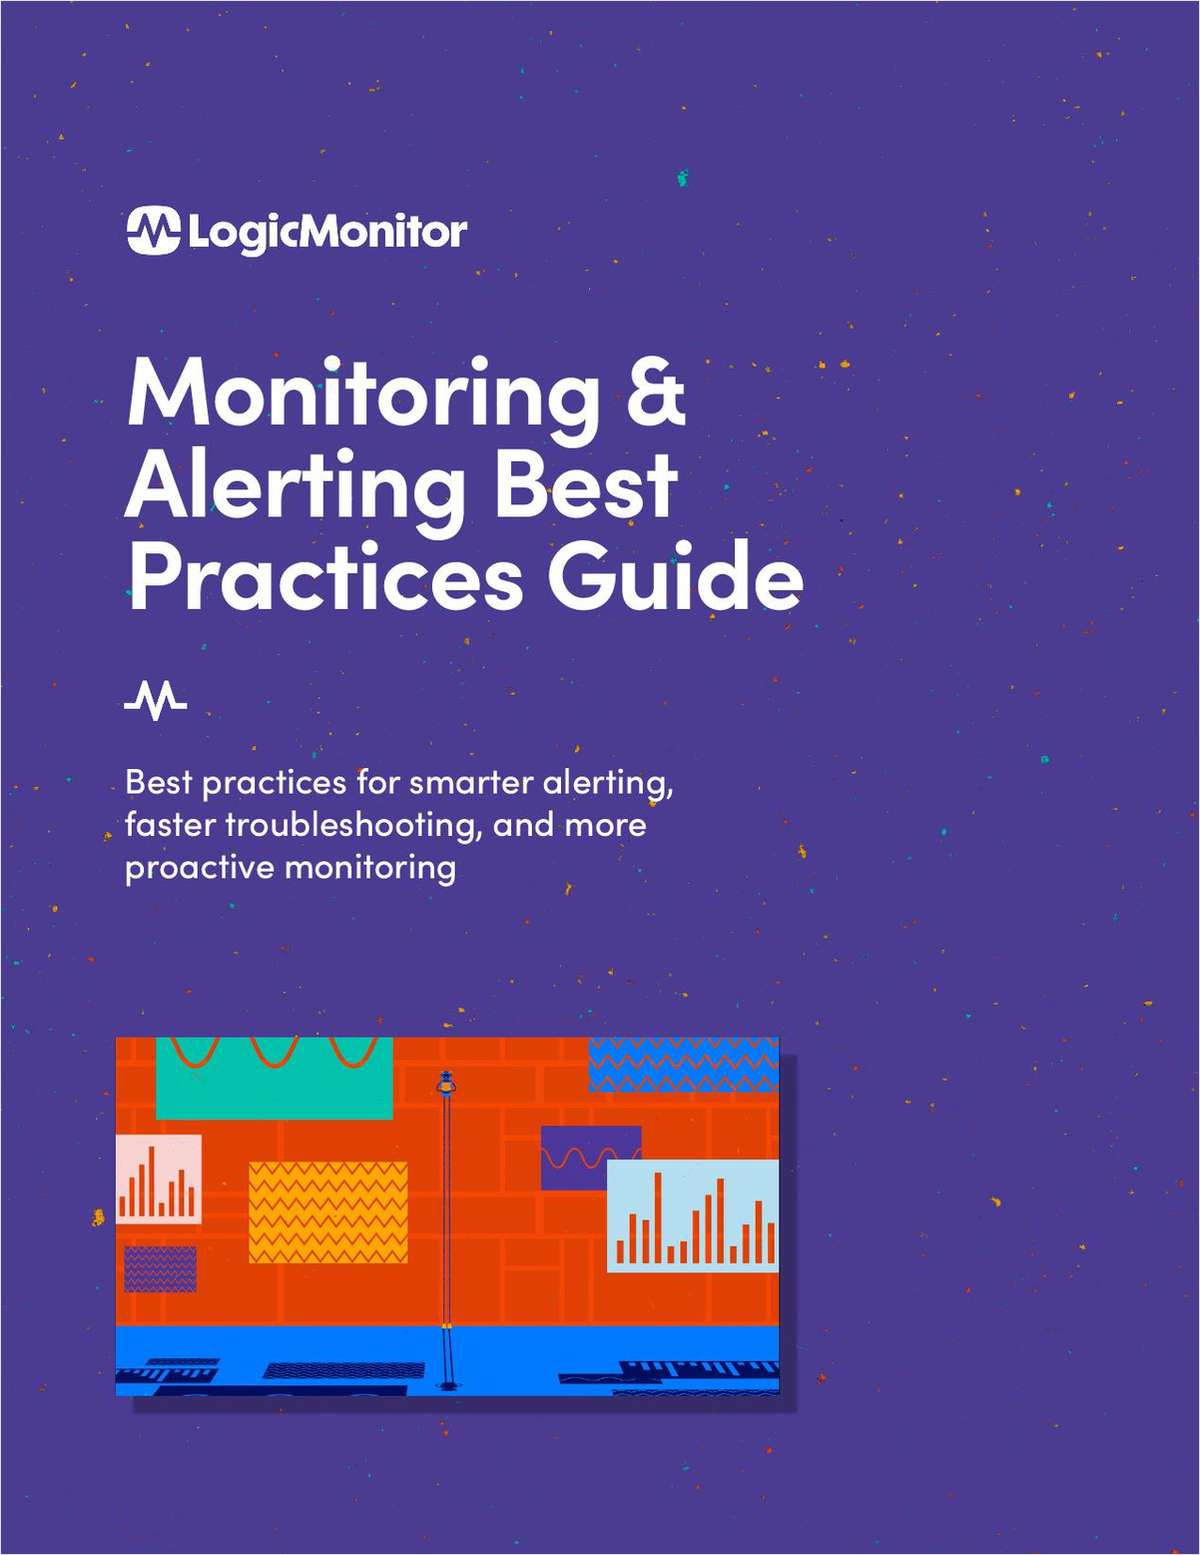 Monitoring & Alerting Best Practices Guide